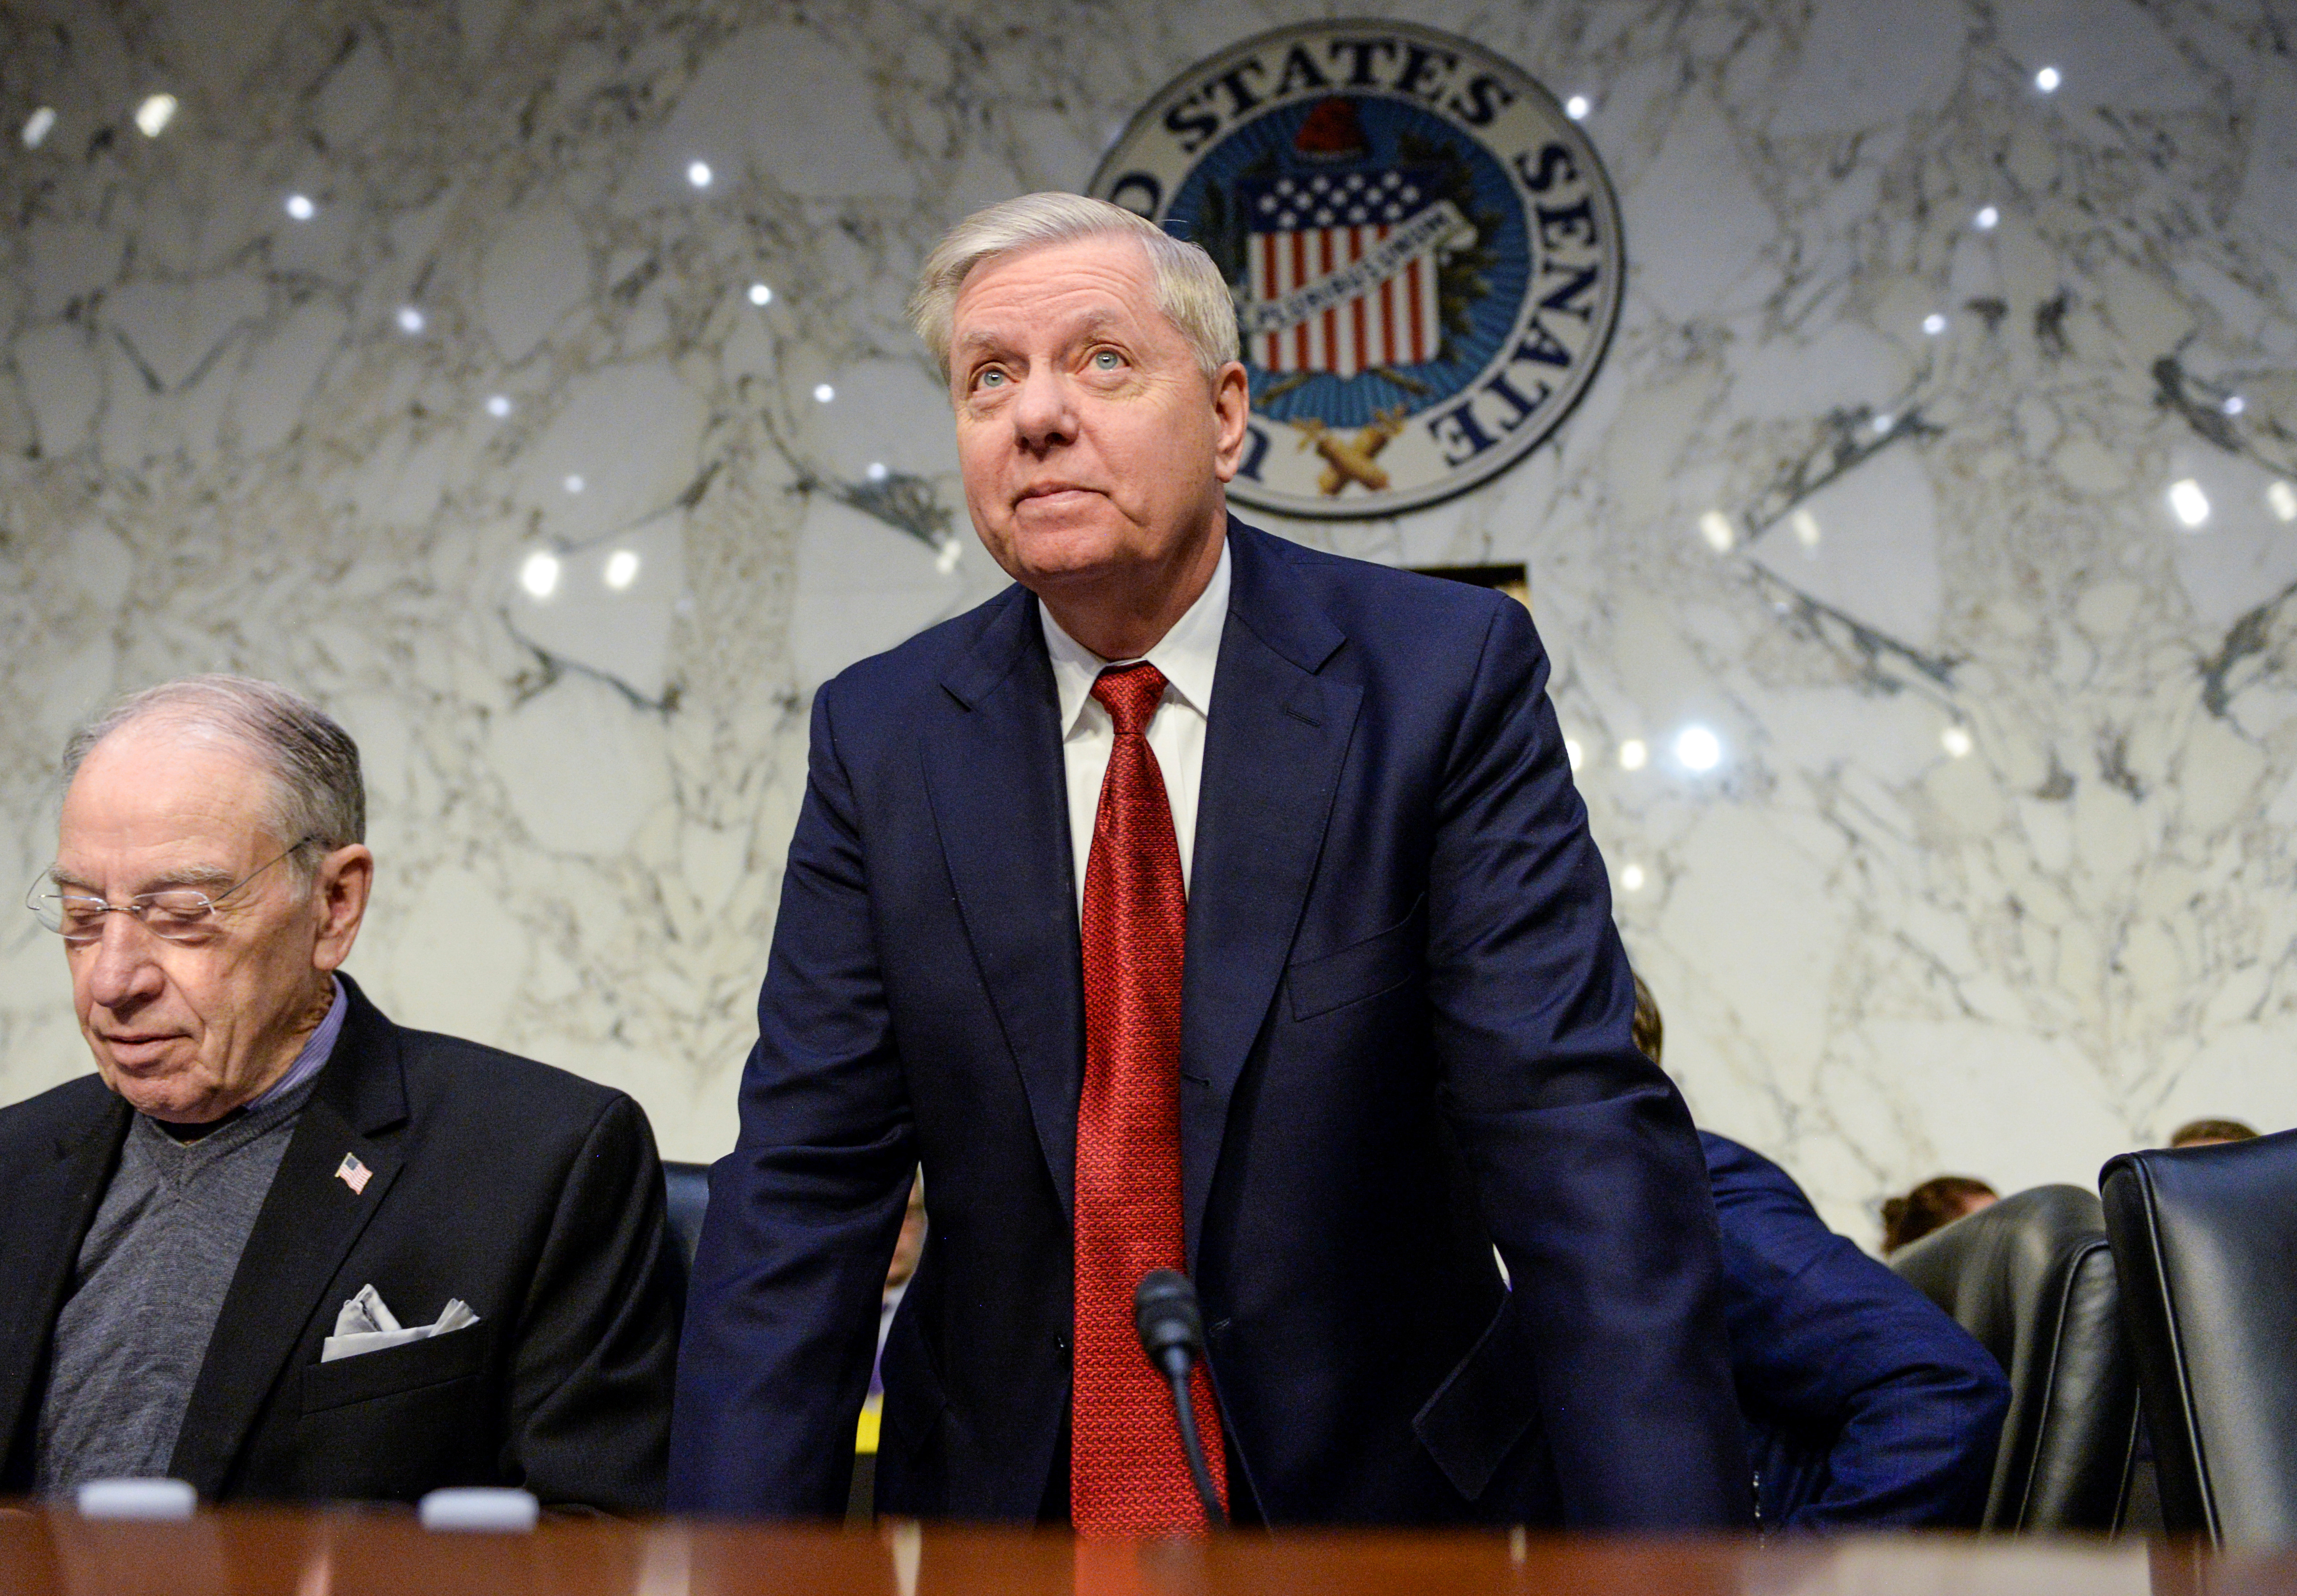 "U.S. Senate Judiciary Committee Chairman Senator Lindsey Graham (R-SC) arrives next to a seat Sen. Chuck Grassley (R-IA) prior to hearing testimony from Justice Department Inspector General Michael Horowitz before a Senate Judiciary Committee hearing ""Examining the Inspector General's report on alleged abuses of the Foreign Intelligence Surveillance Act (FISA)"" on Capitol Hill in Washington, U.S., December 11, 2019. REUTERS/Erin Scott -"